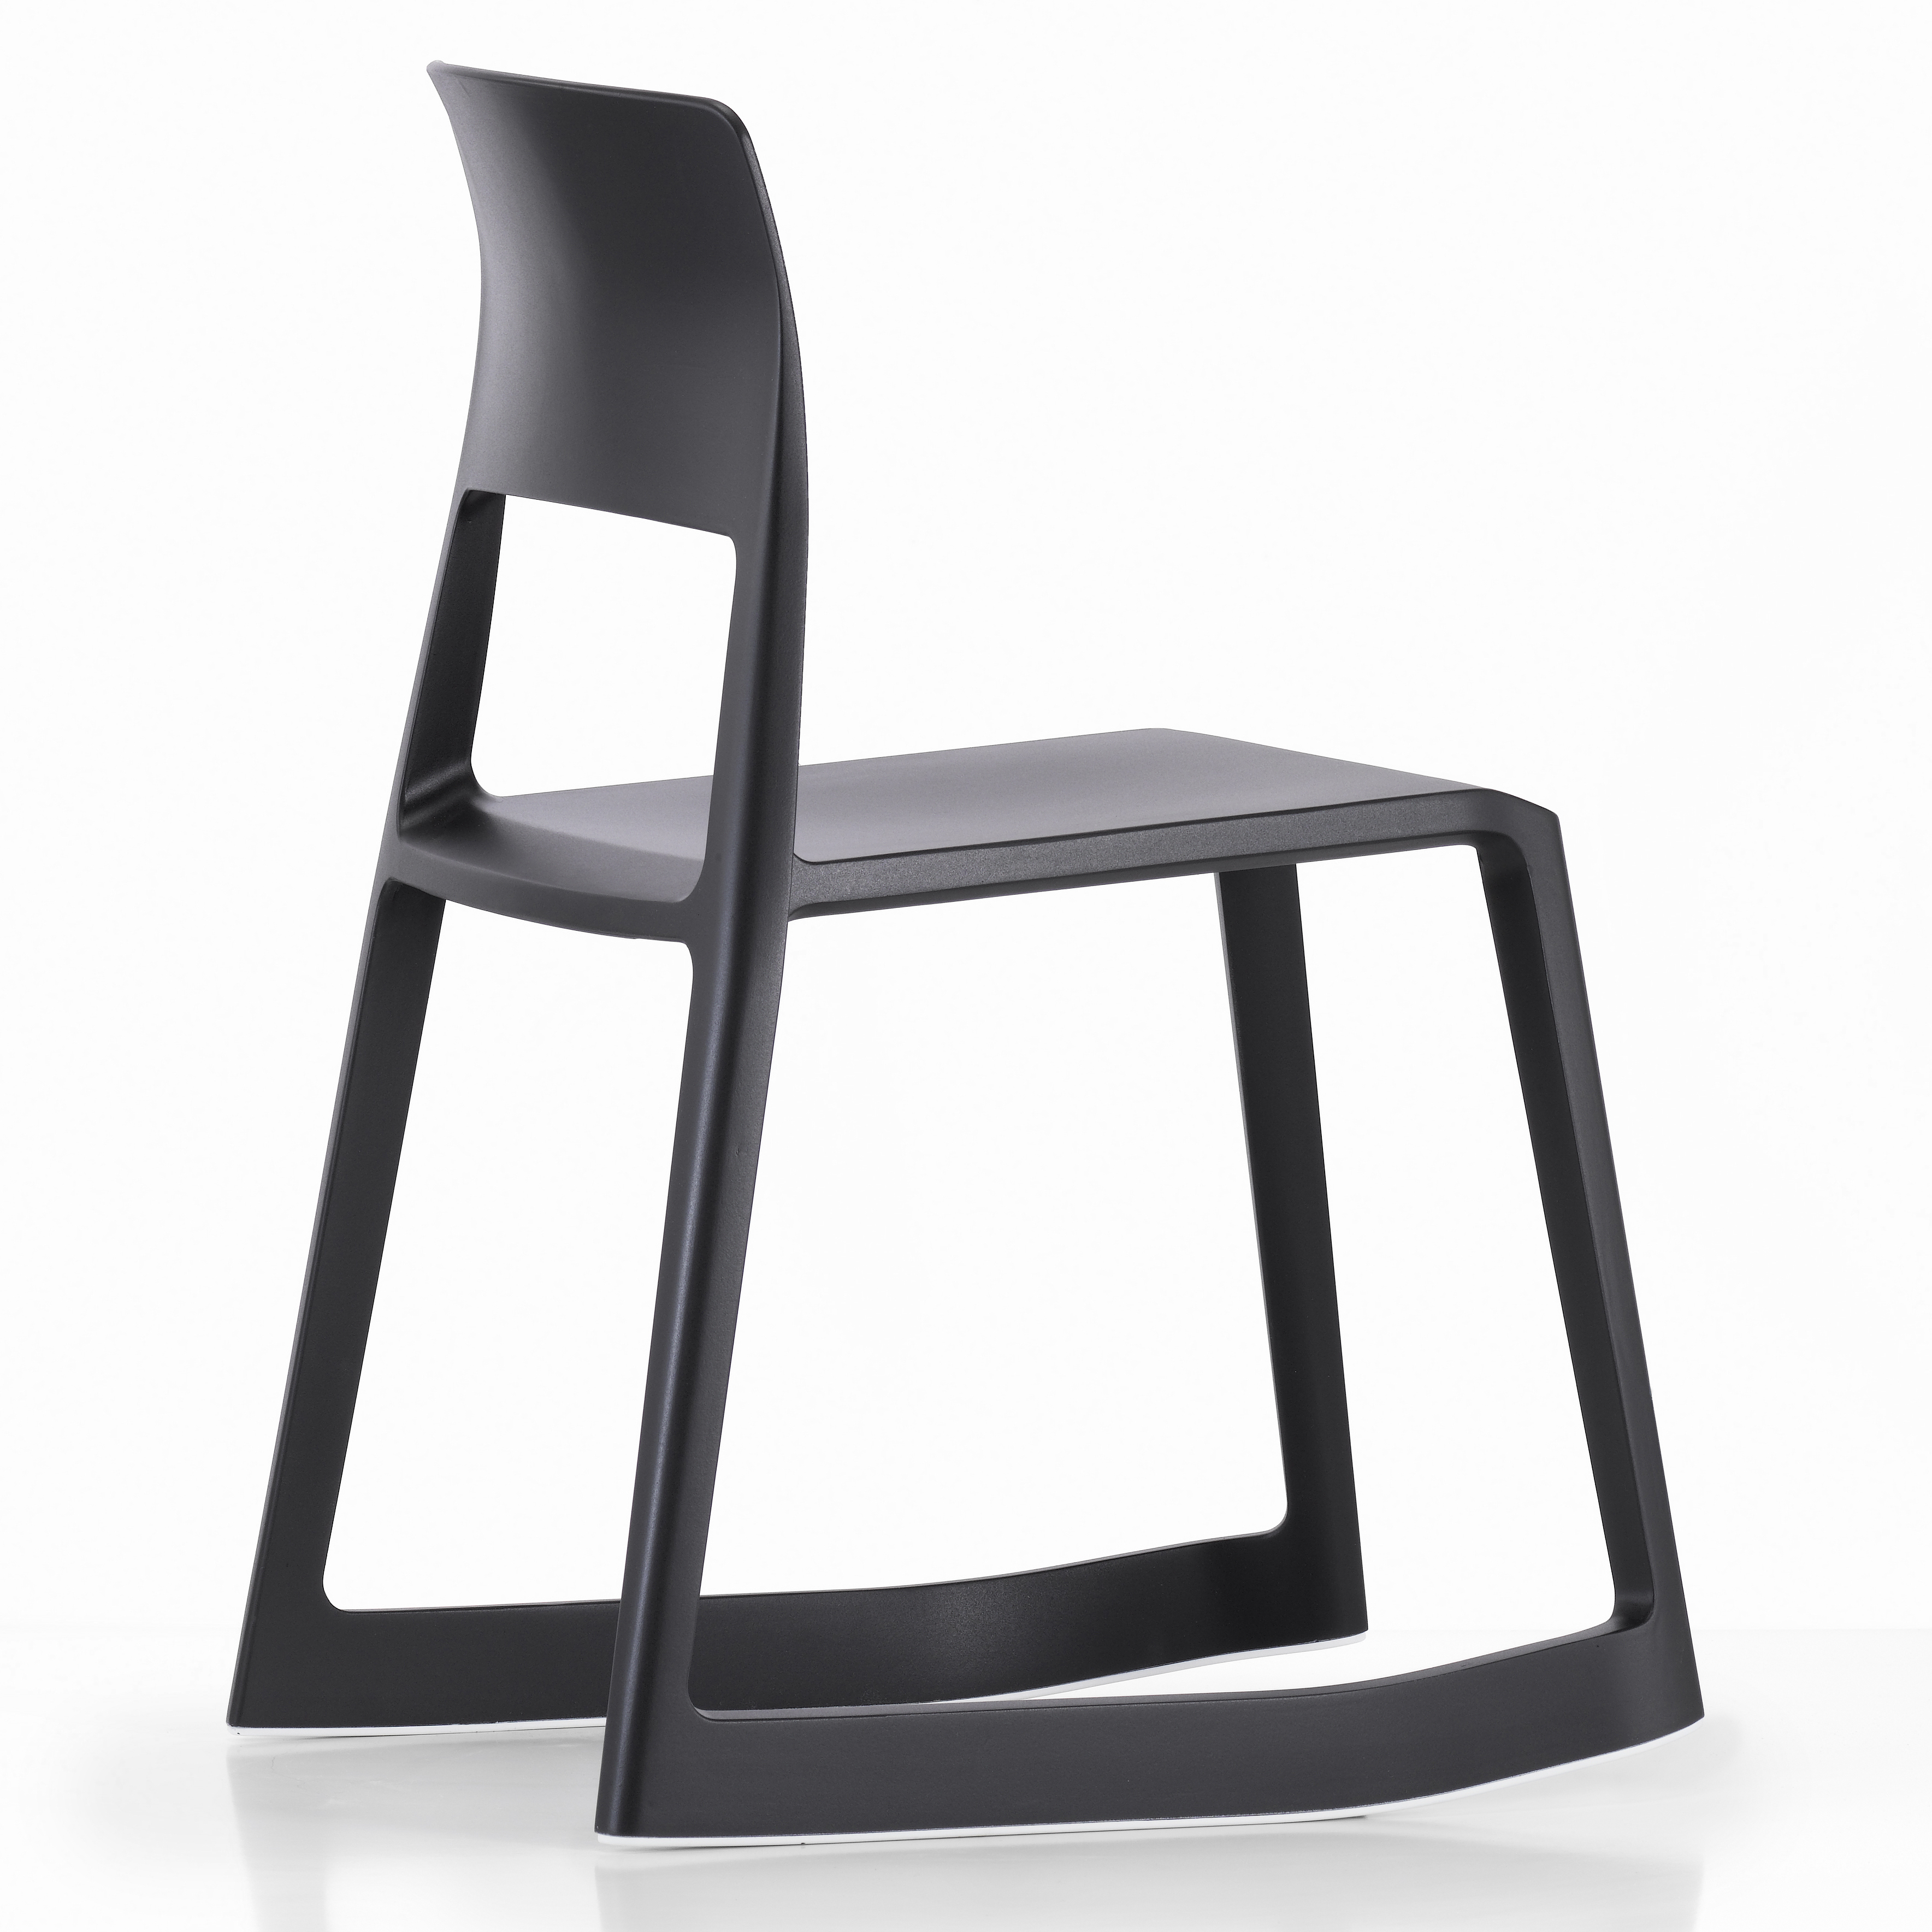 vitra tip ton chair edward barber and jay osgerby. Black Bedroom Furniture Sets. Home Design Ideas